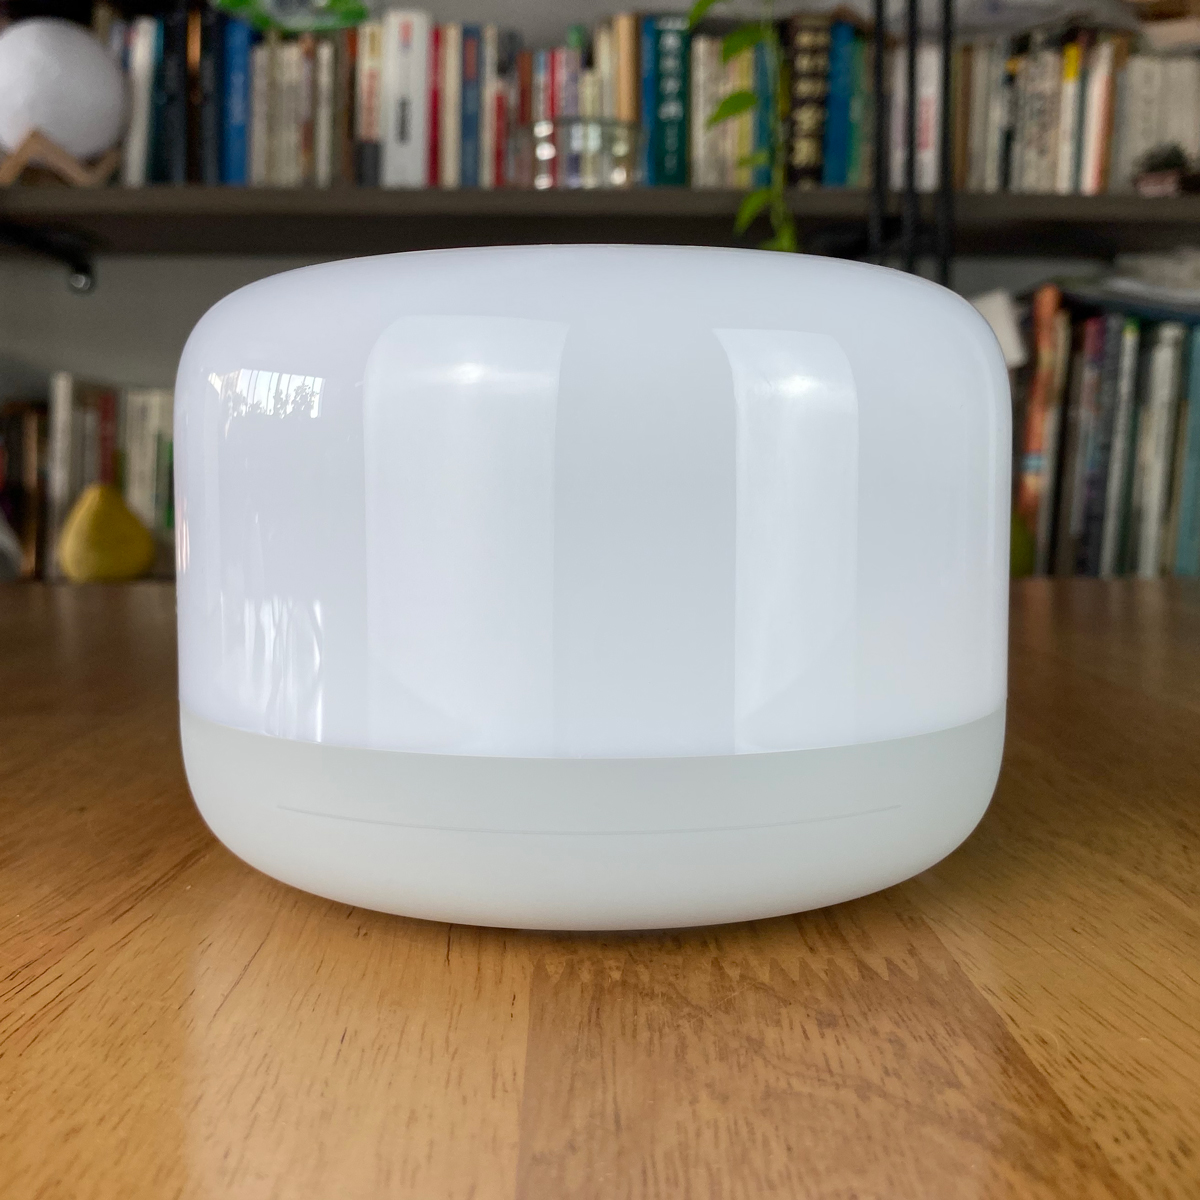 Yeelight Bedside Lamp D2 review